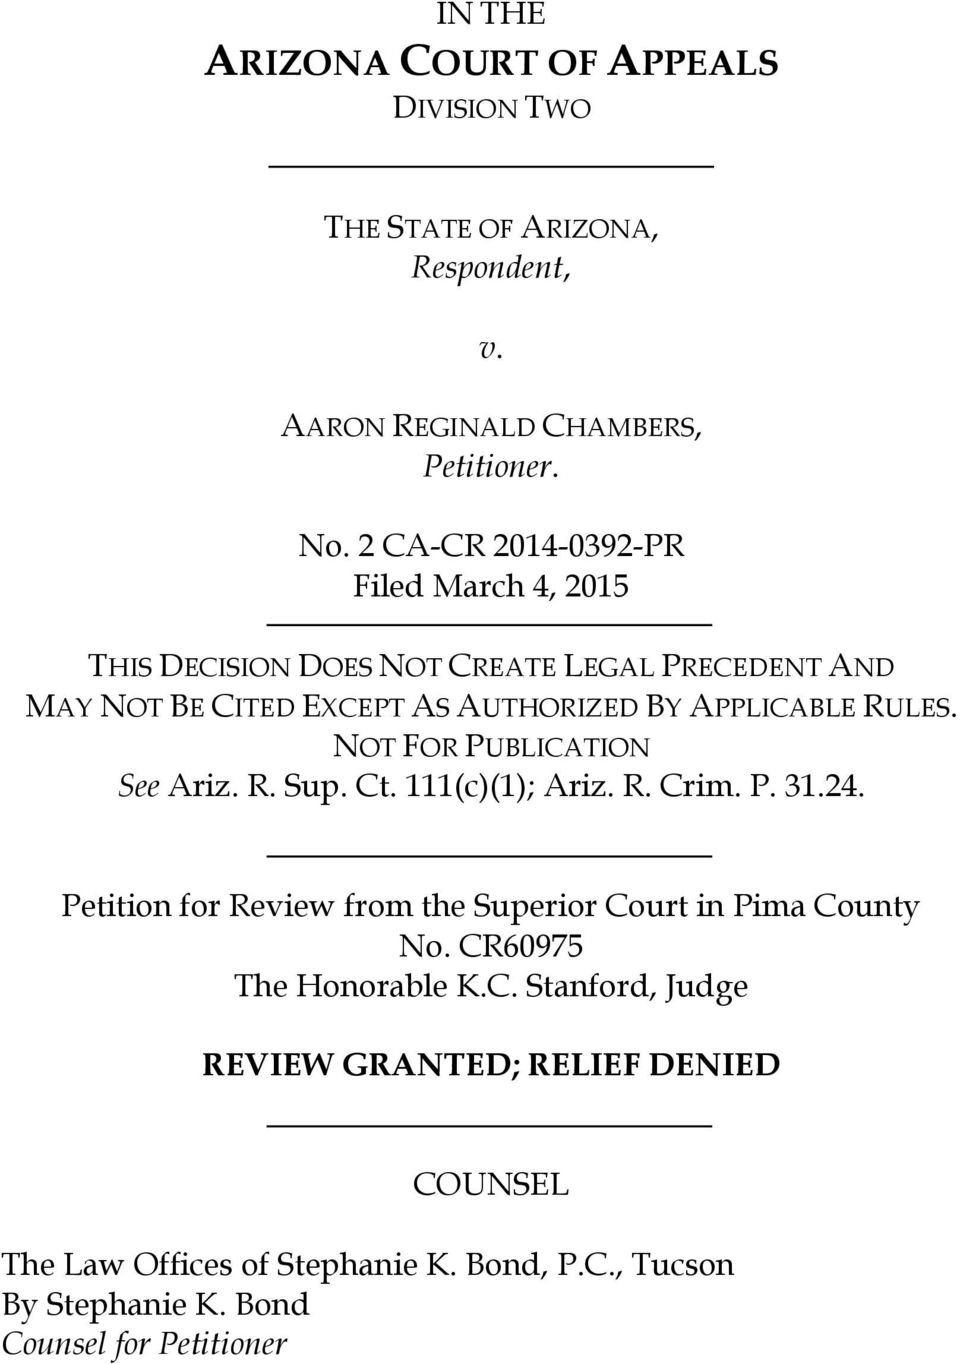 RULES. NOT FOR PUBLICATION See Ariz. R. Sup. Ct. 111(c)(1); Ariz. R. Crim. P. 31.24. Petition for Review from the Superior Court in Pima County No.